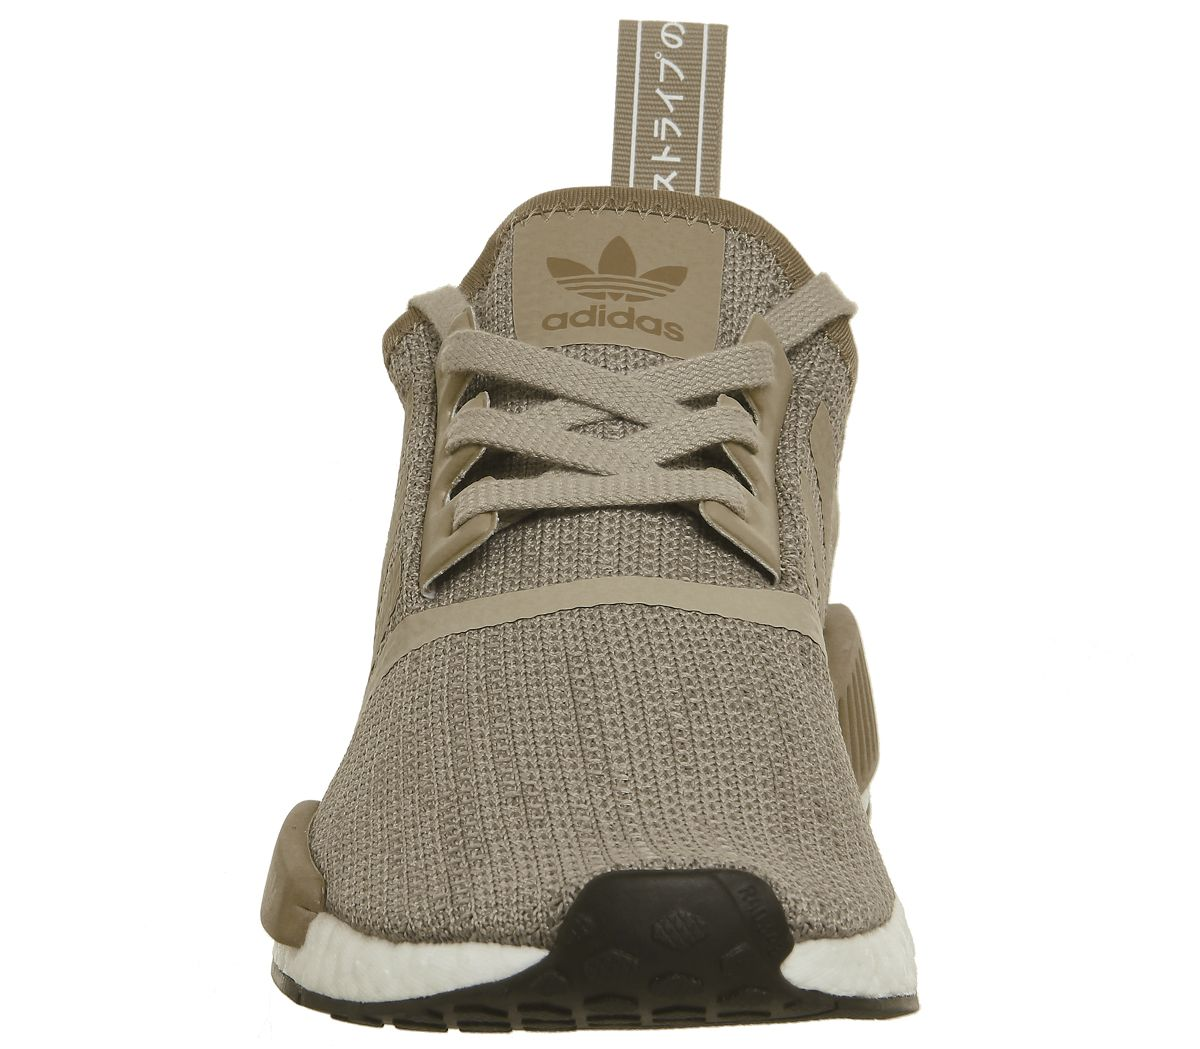 40366c6f6 adidas Nmd R1 Trainers Raw Gold Cardboard White - His trainers